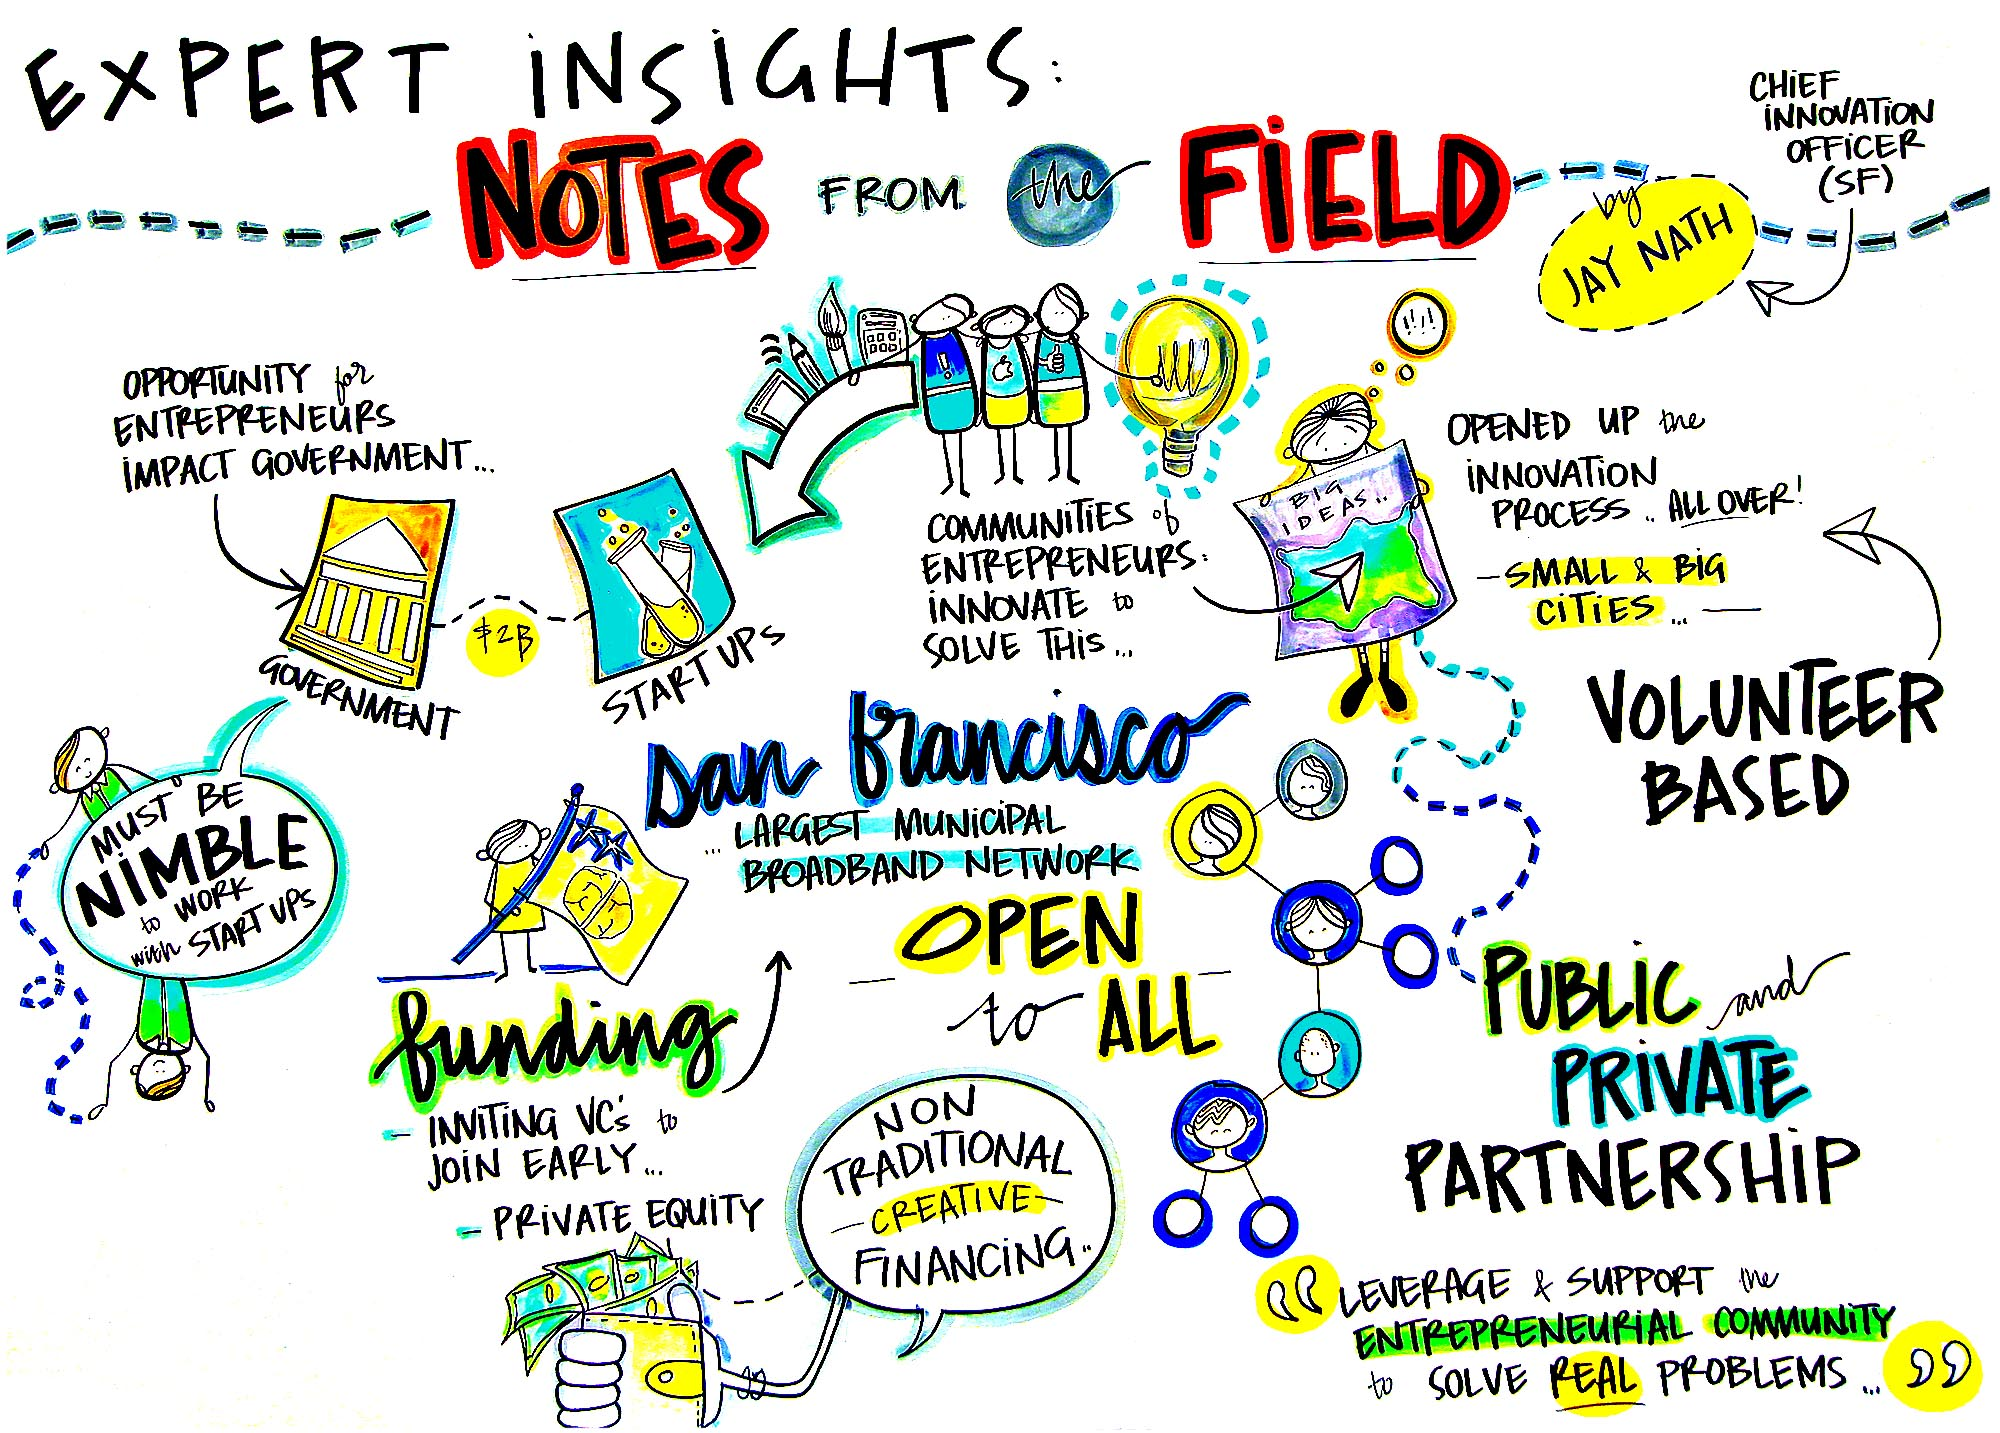 Expert Insights - John Lettieri - Scribing 2   Mayors Conference 2017